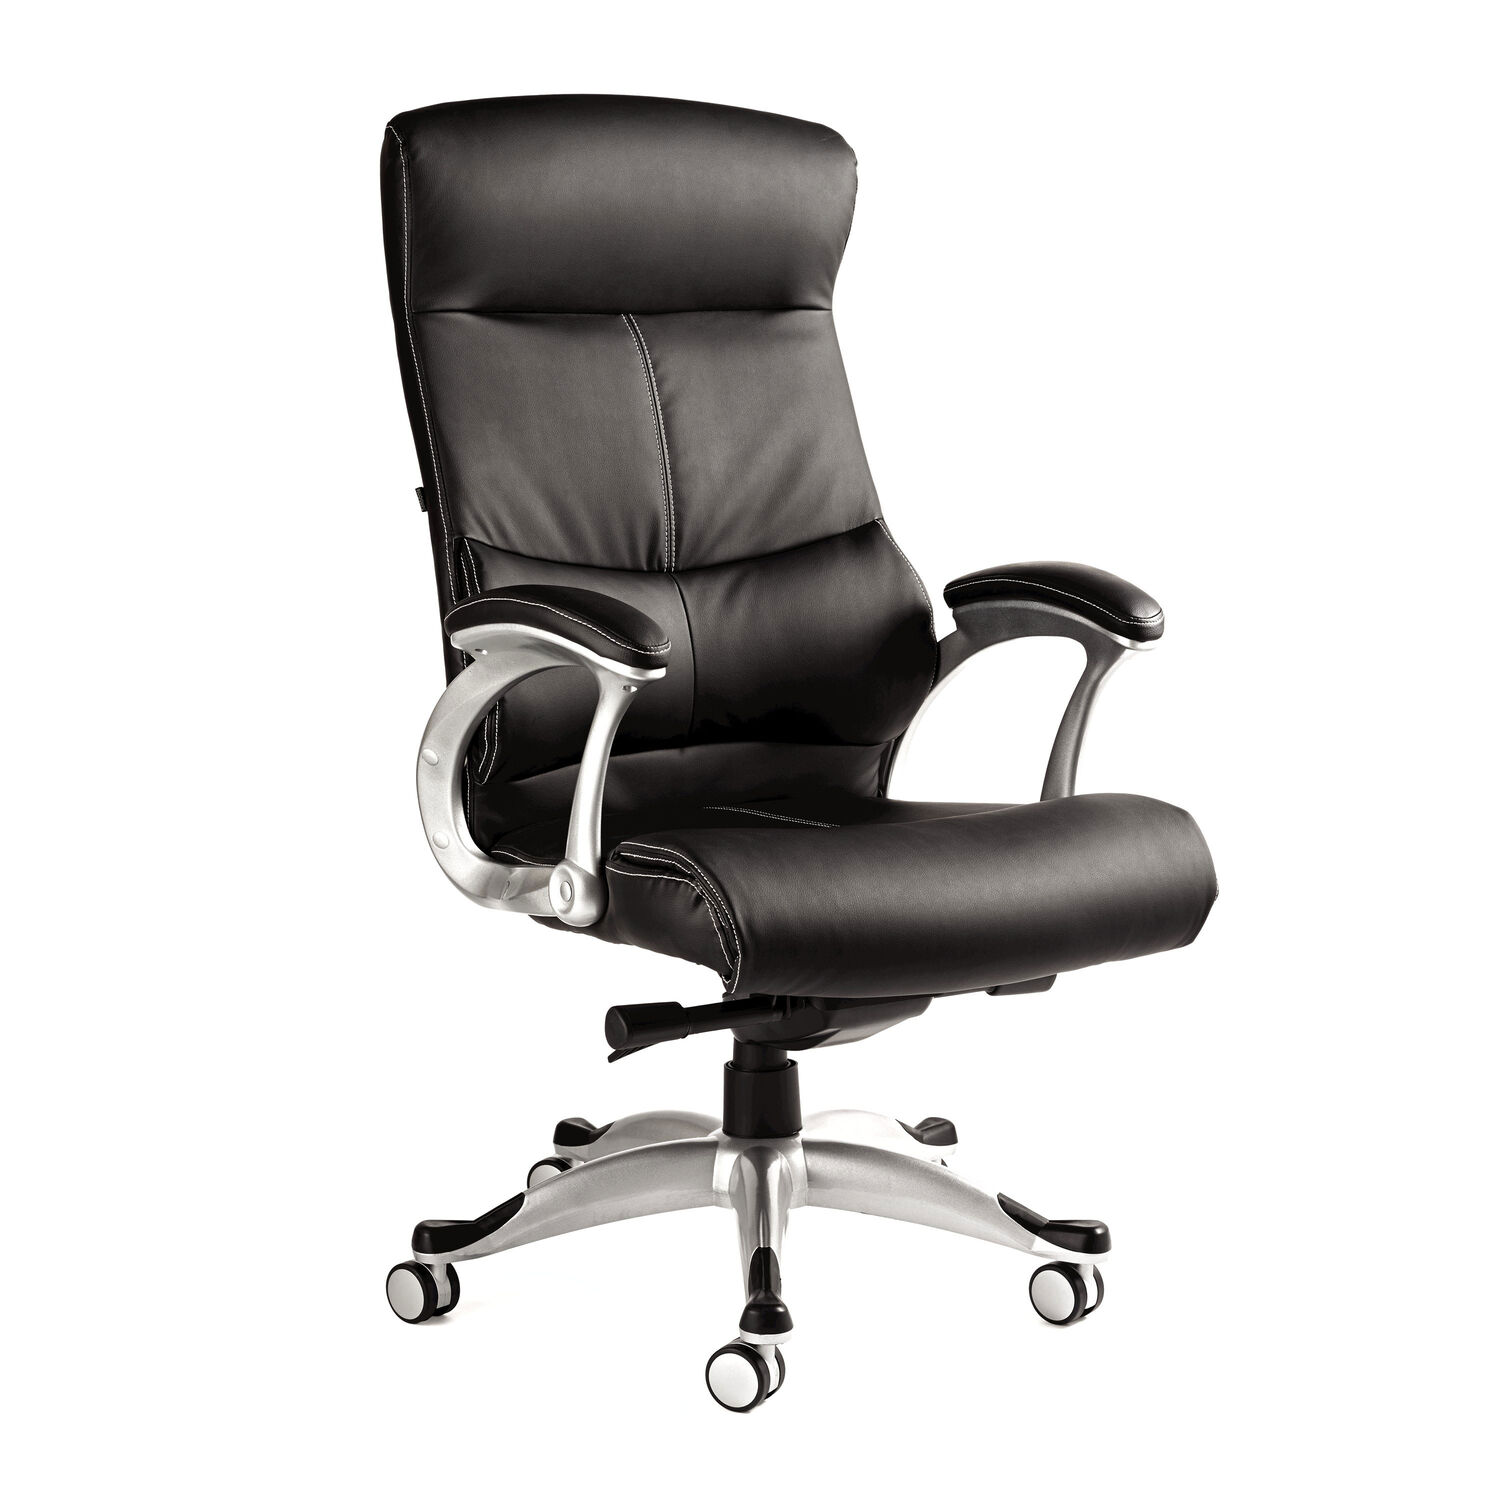 Office Leather Chair office chairs | samsonite